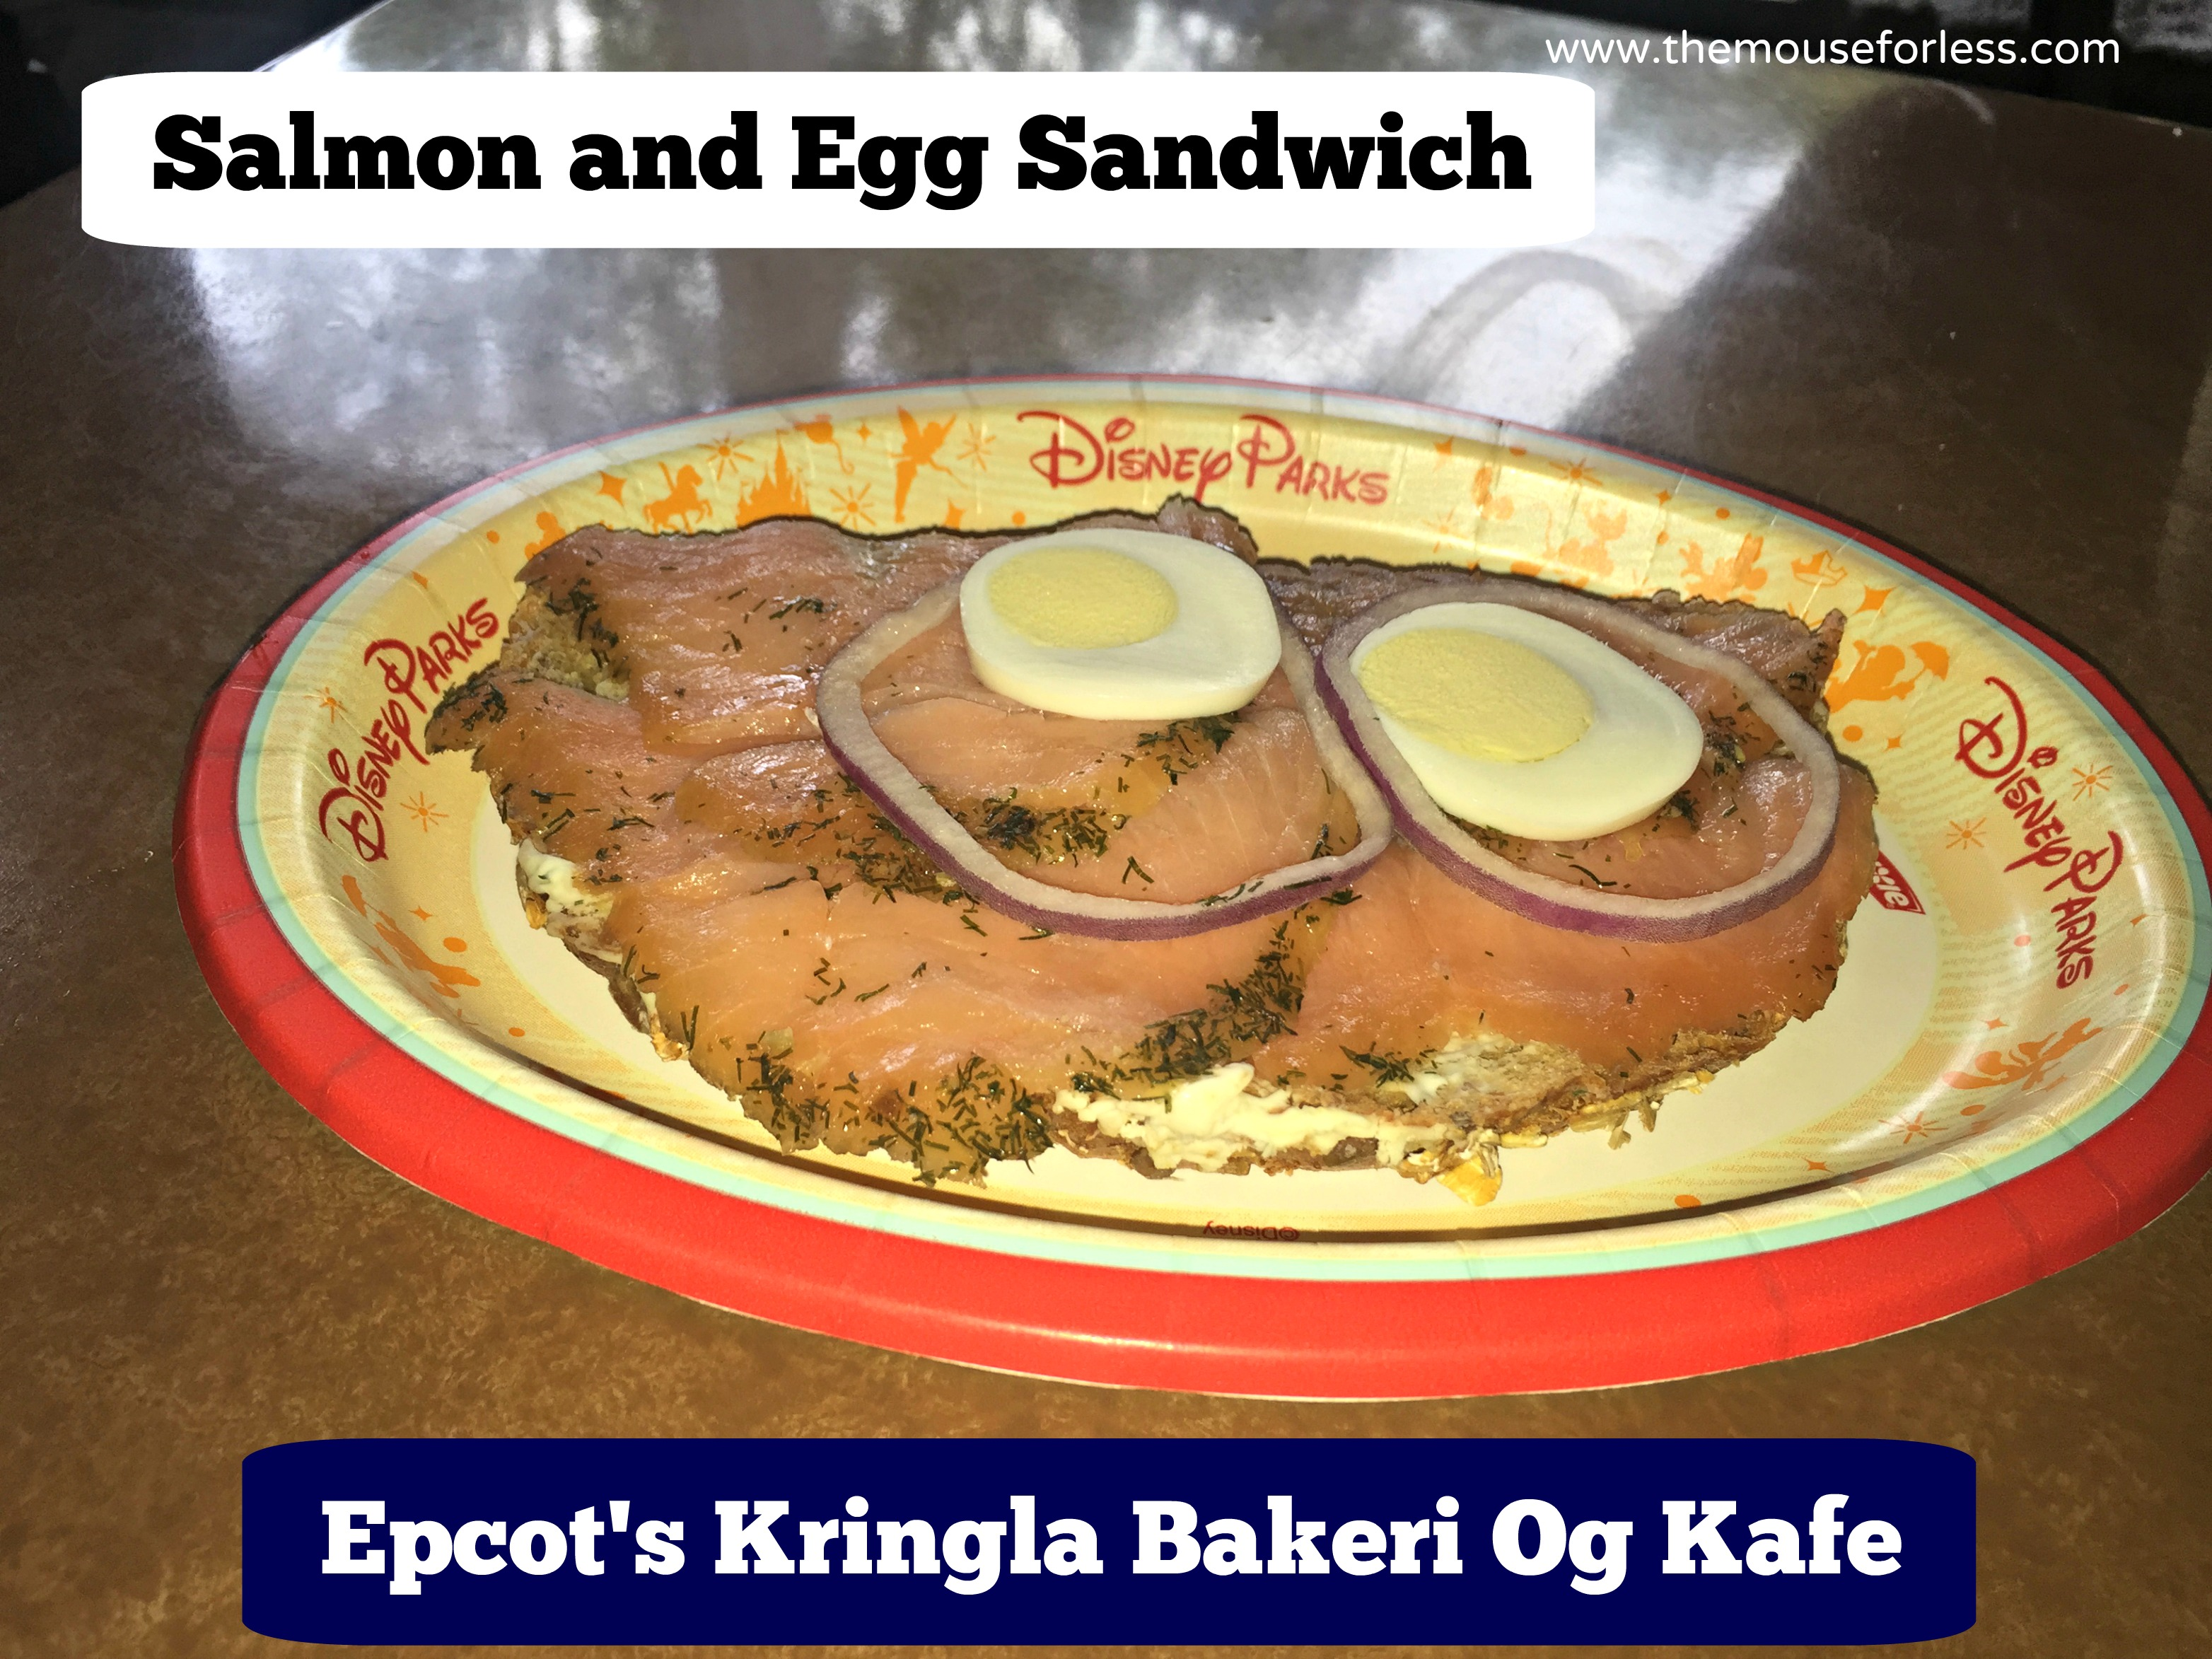 Salmon and Egg Sandwich at Kringla Bakeri Og Kafe Menu - Table Service Restaurant at Epcot #DisneyDining #WaltDisneyWorld